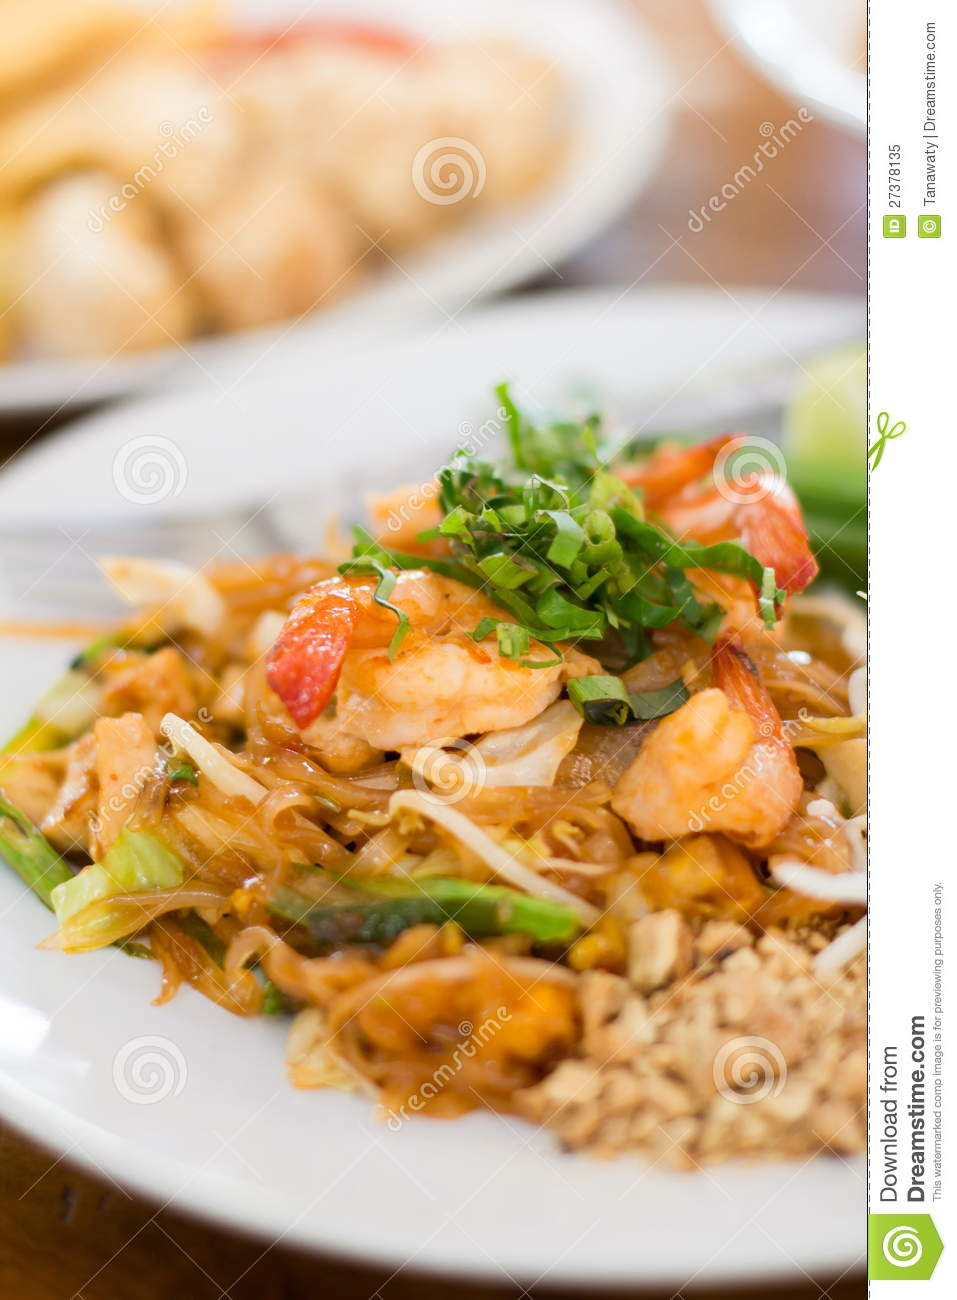 Stir Fry Rice Noodles And Shrimp Royalty Free Stock Photo - Image ...